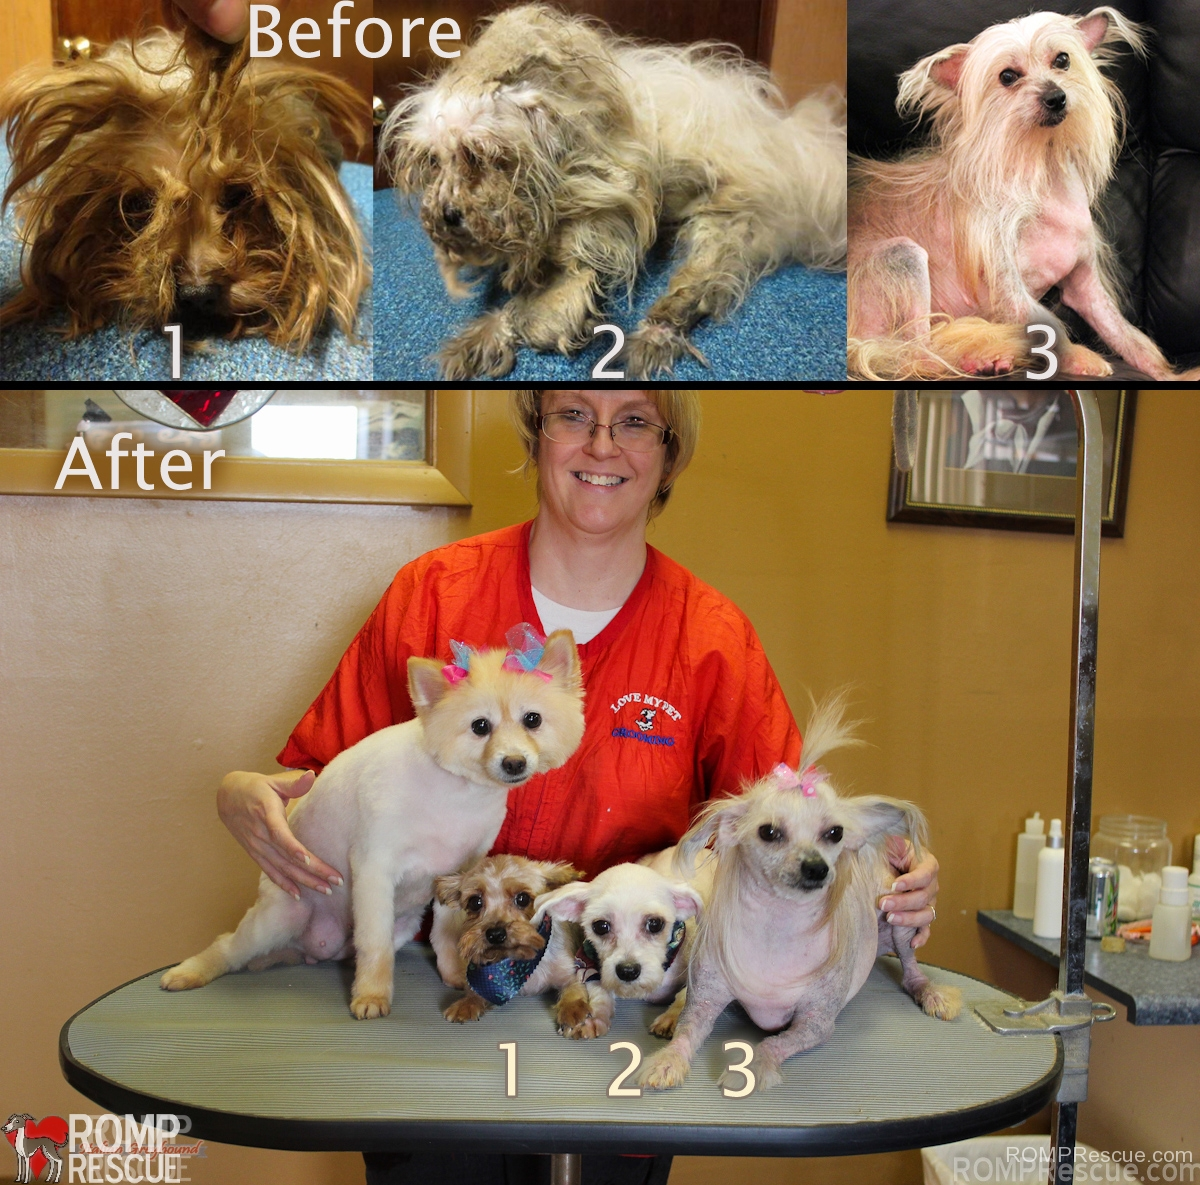 rescue, before after, before and after, dog rescue, dog, dogs, rescue, rescue, shelter, shelters, volunteer, groomer, miracle, cleaned up, maltese, yorkie, matted, badly matted, help